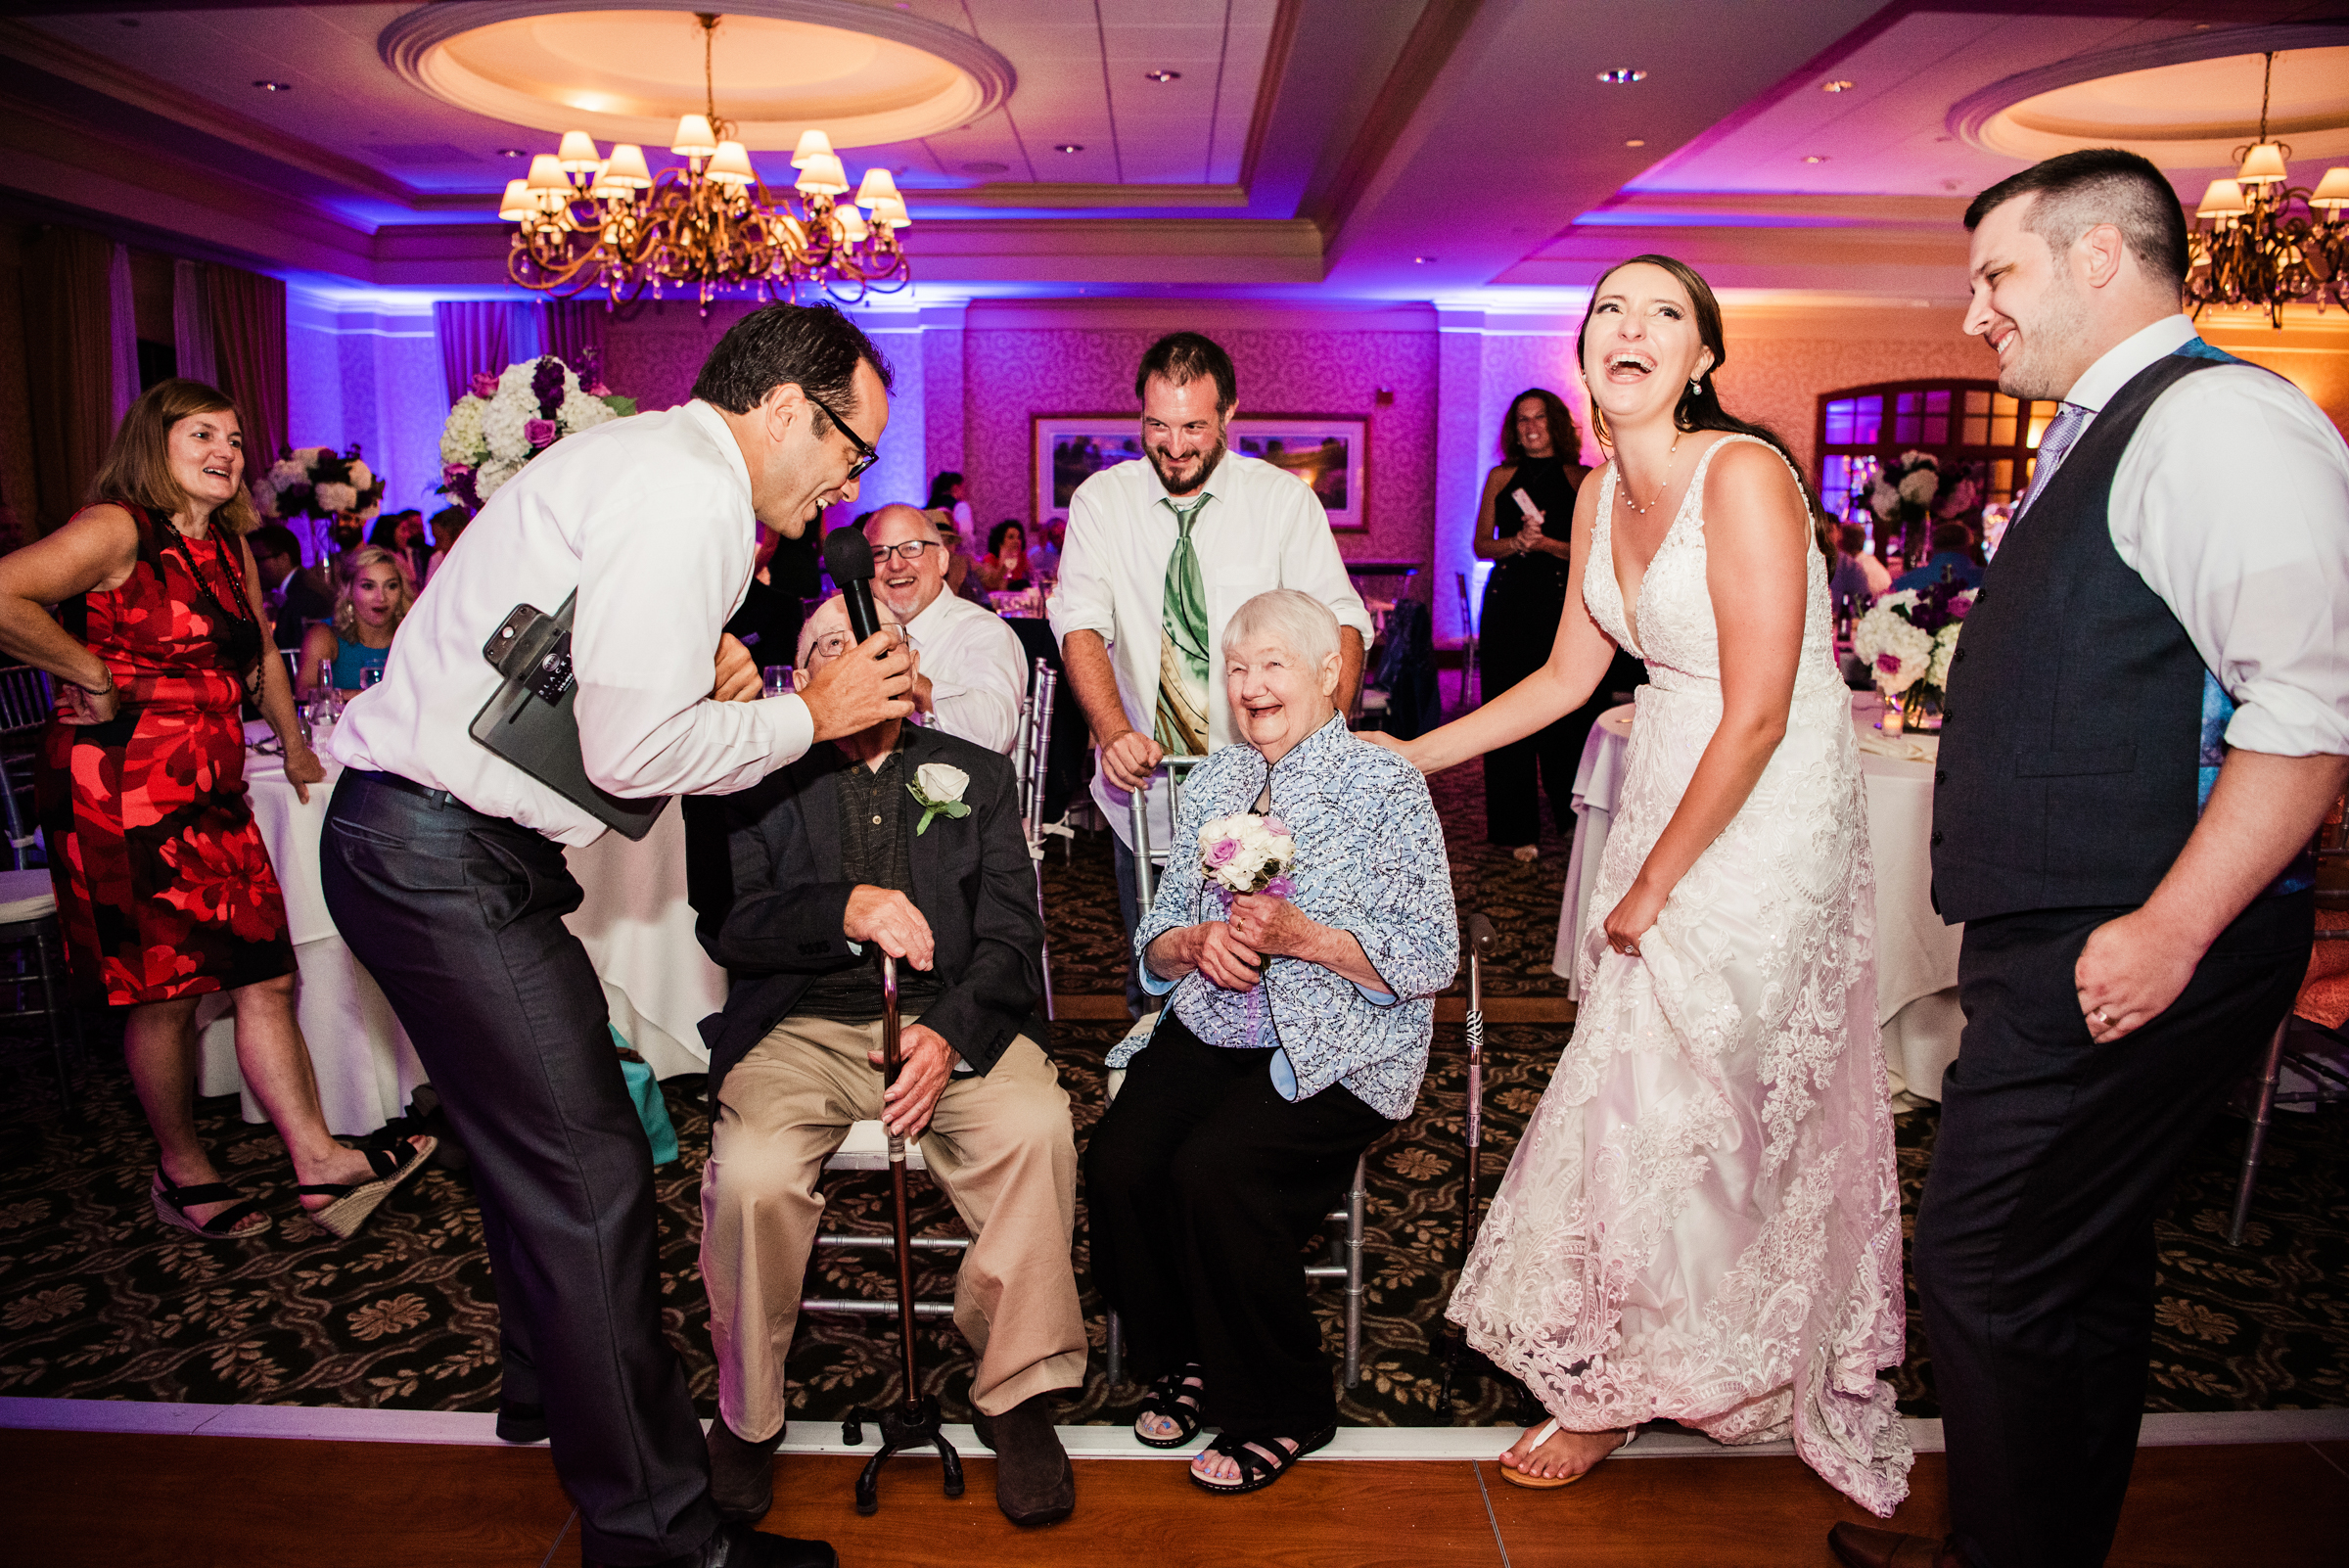 Turning_Stone_Casino_Resort_Central_NY_Wedding_JILL_STUDIO_Rochester_NY_Photographer_DSC_2253.jpg